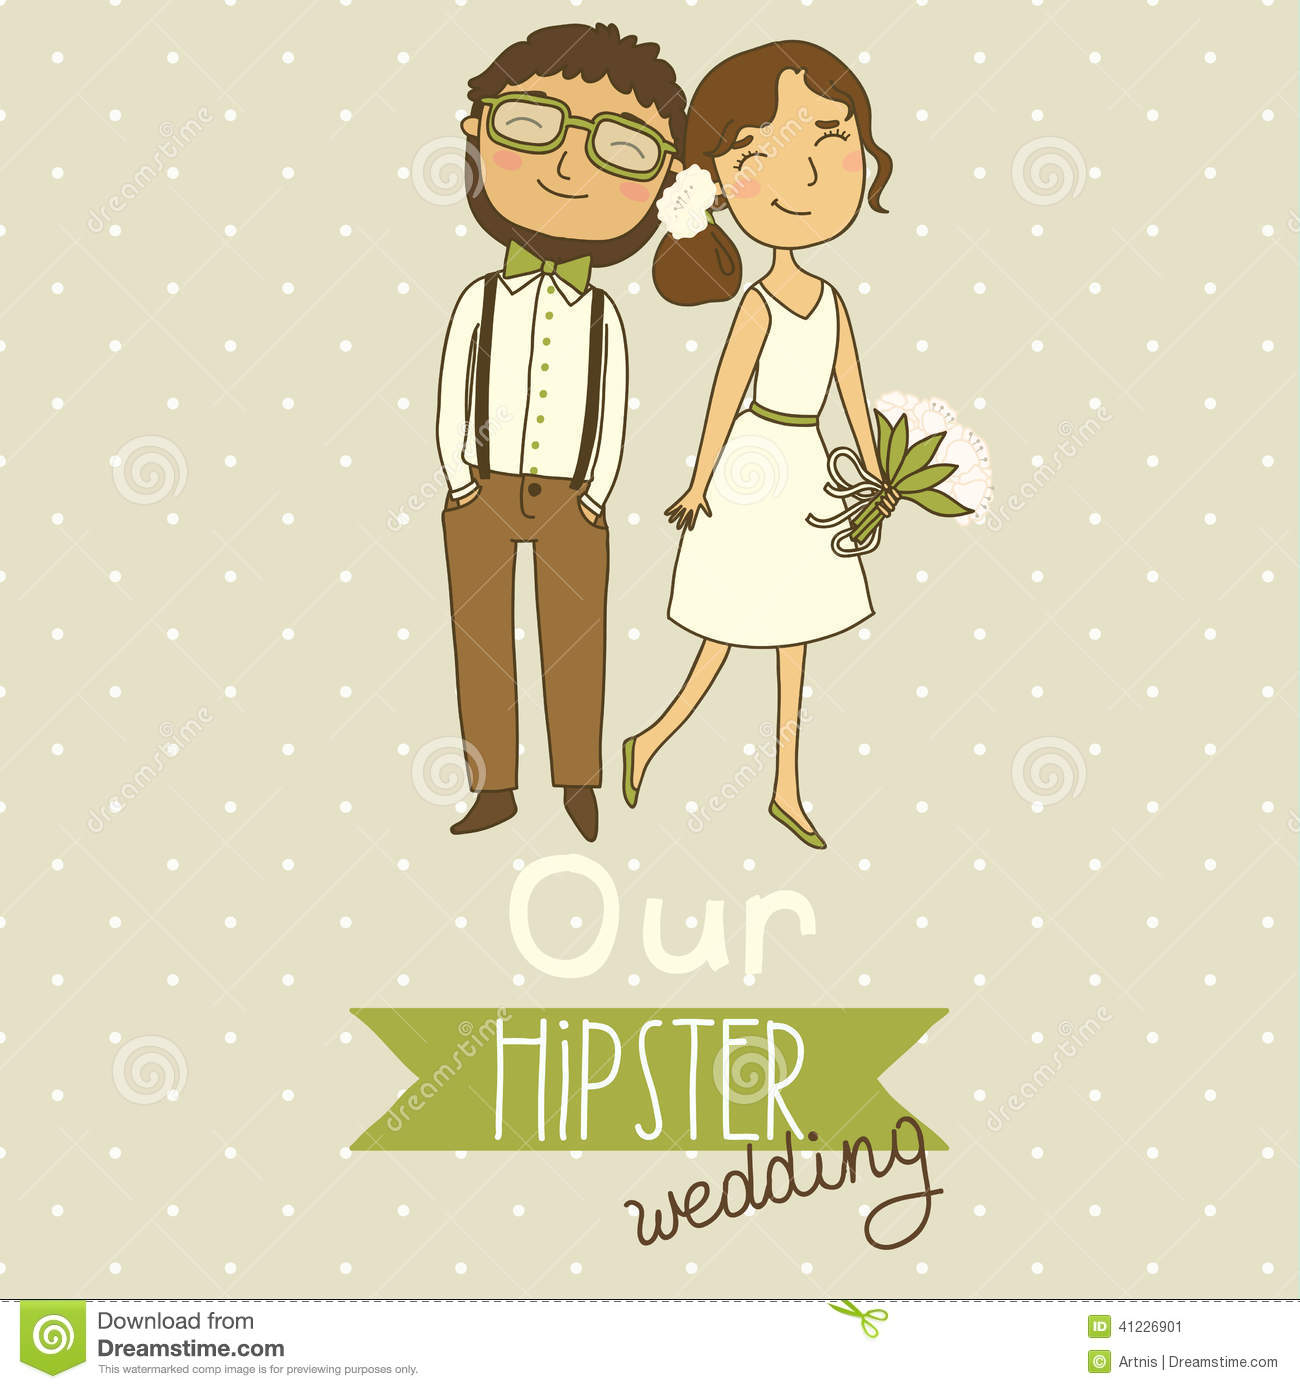 Wedding Invitation With A Cute Couple Stock Vector - Image ...